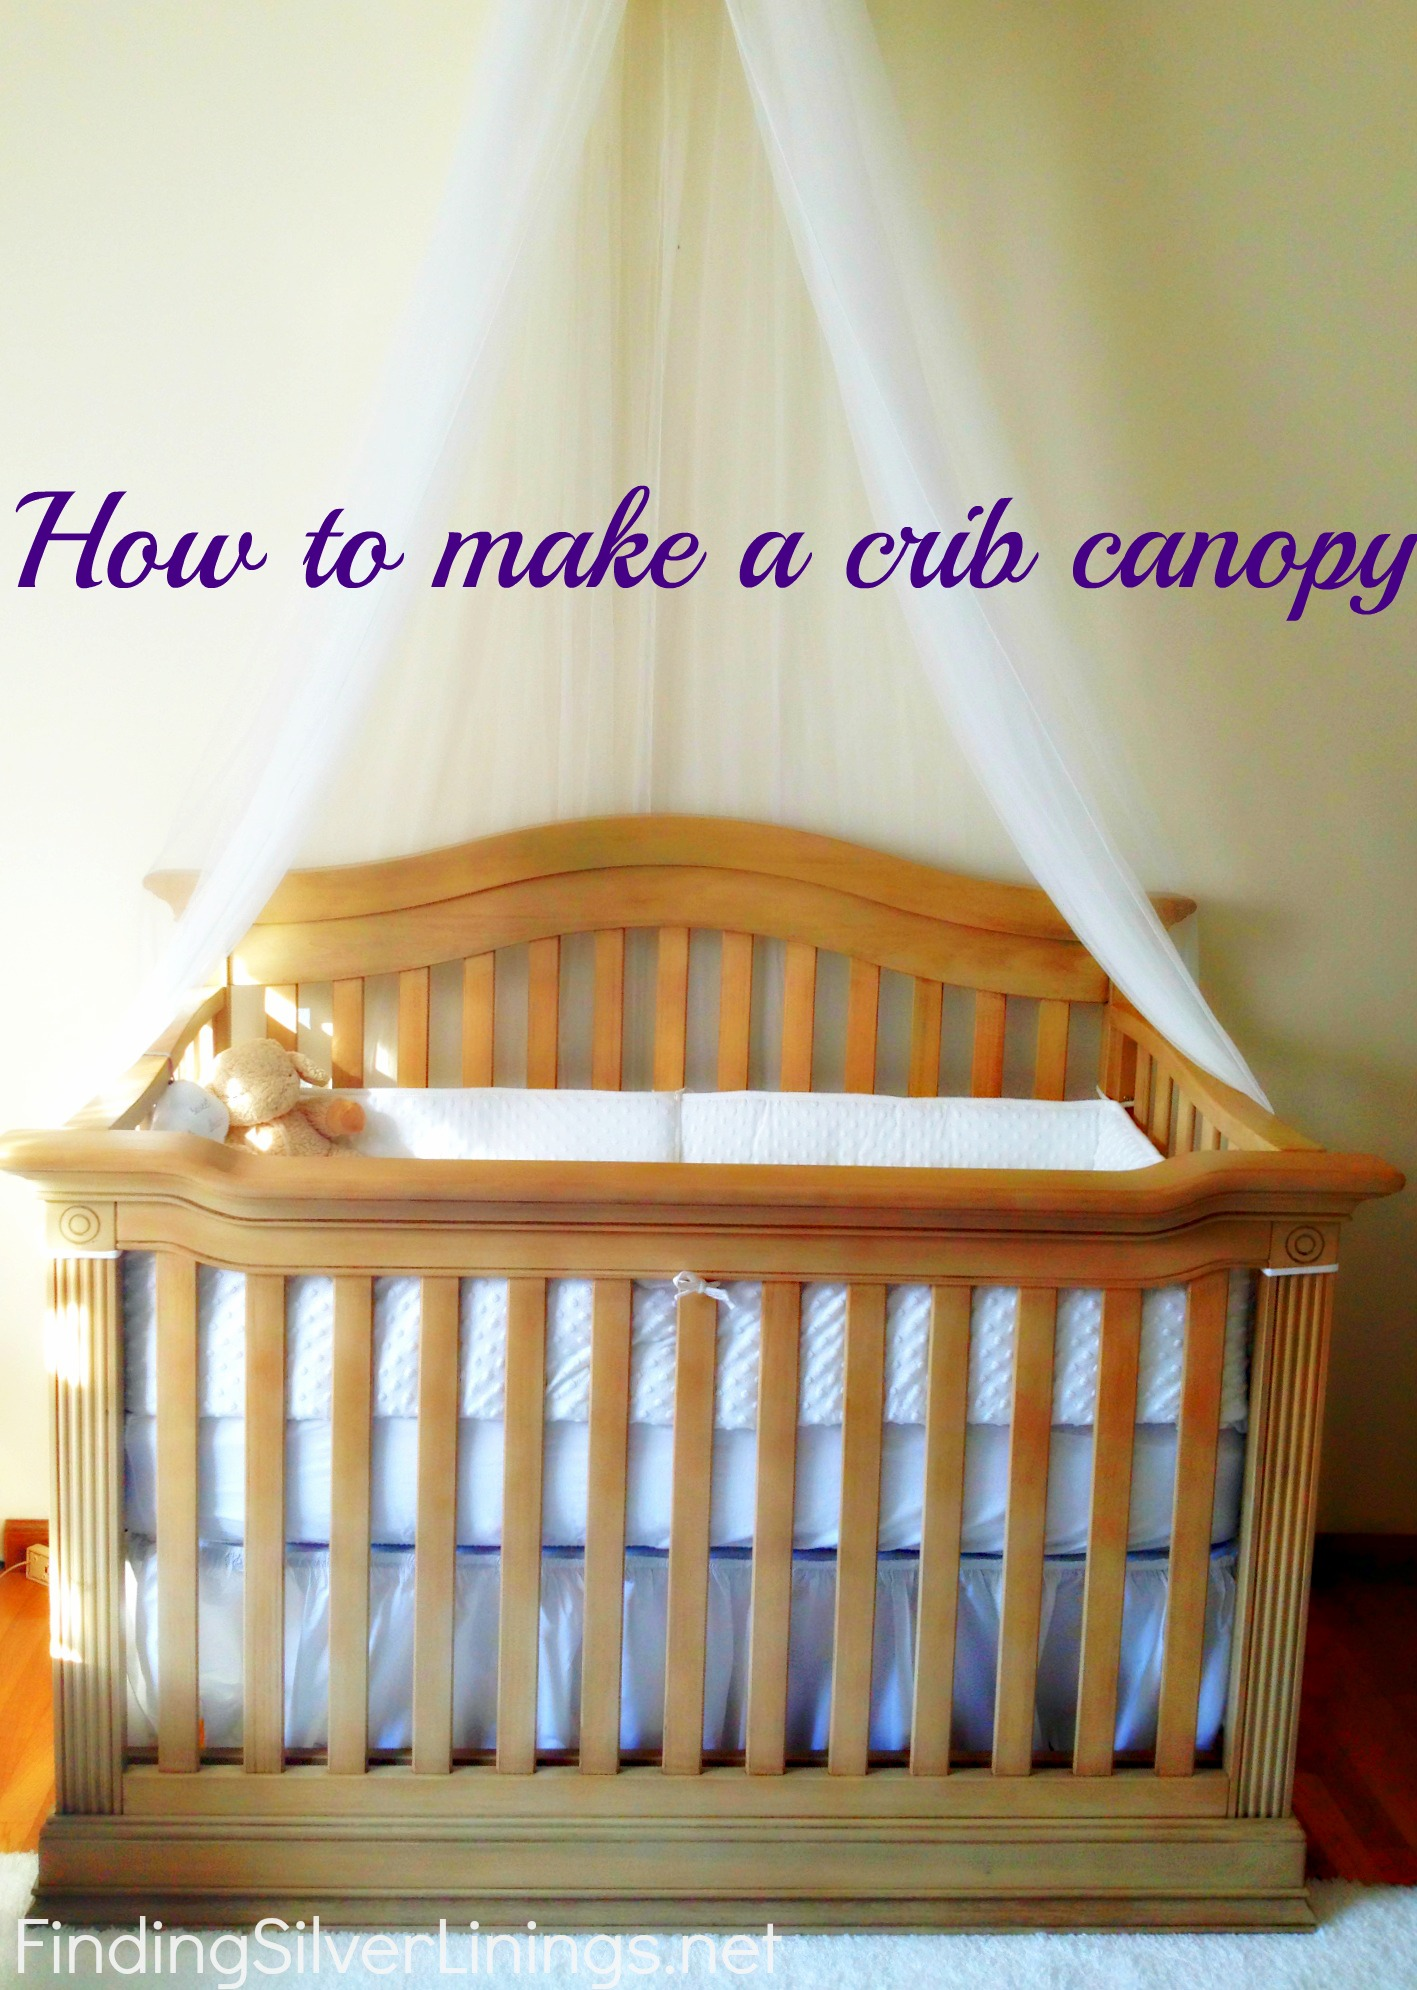 & How To Make A Crib Canopy | Finding Silver Linings